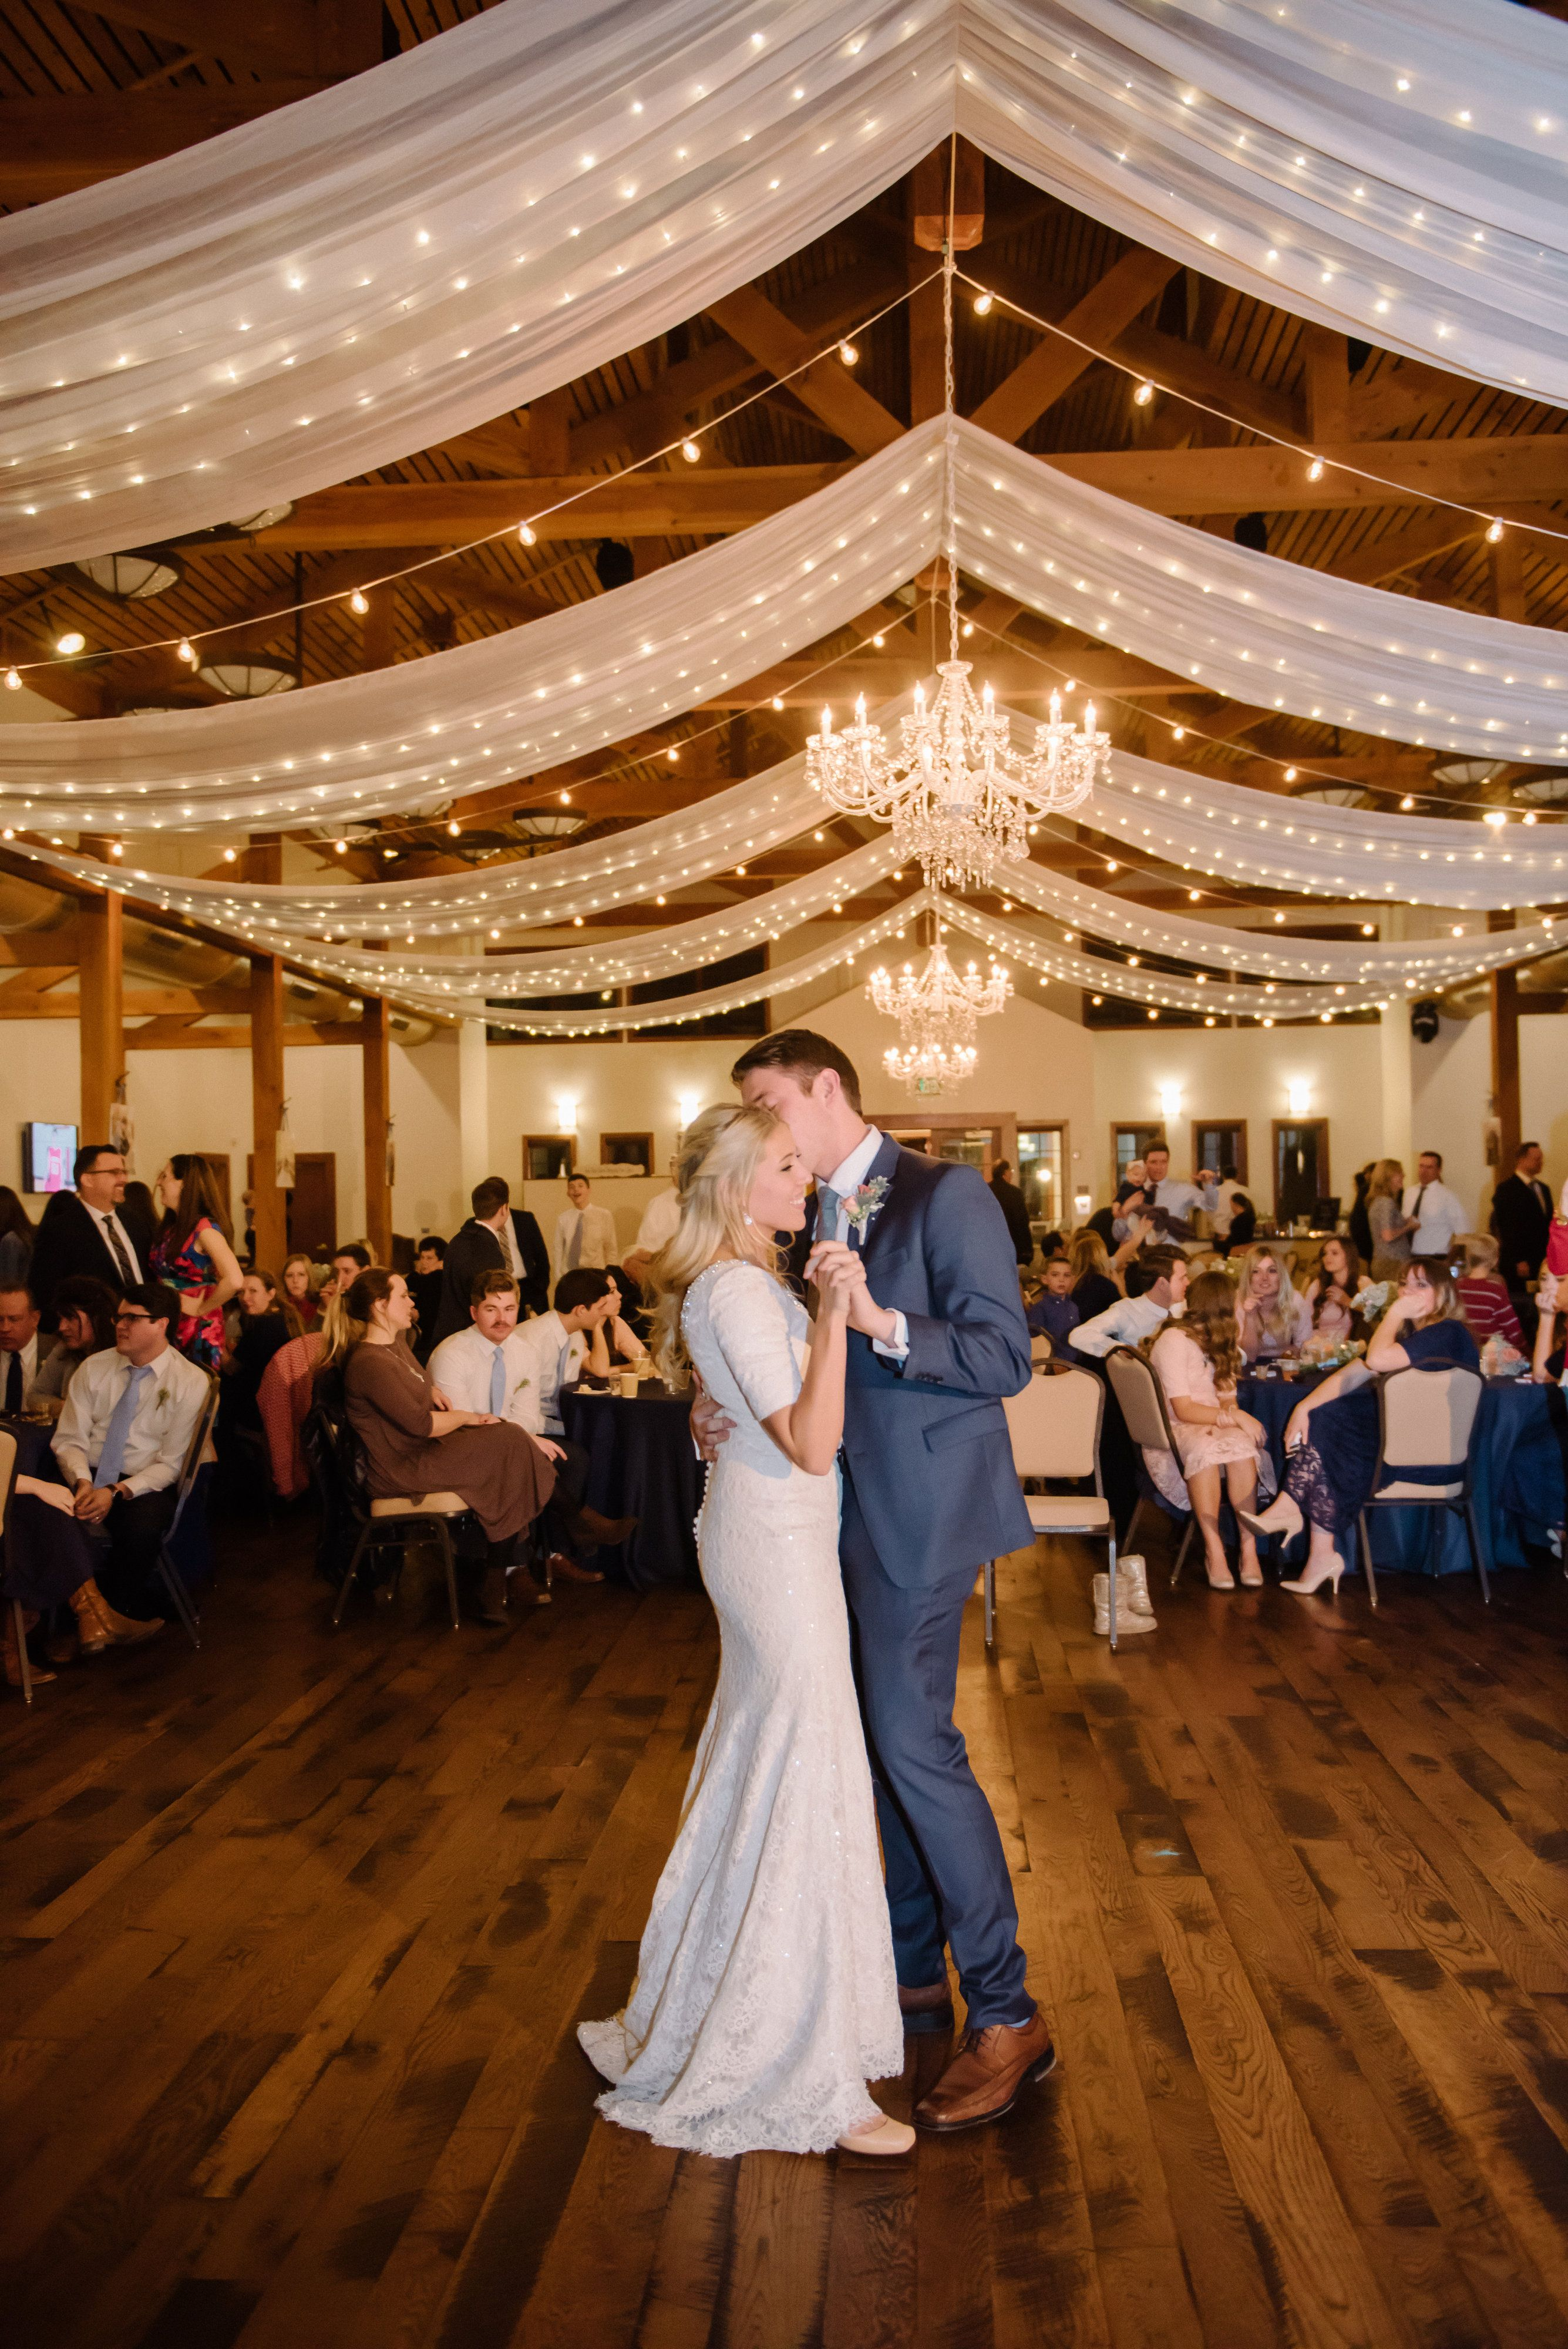 This Is The Place Heritage Park Wedding Reception Venues Lights Wedding Decor Wedding Lights